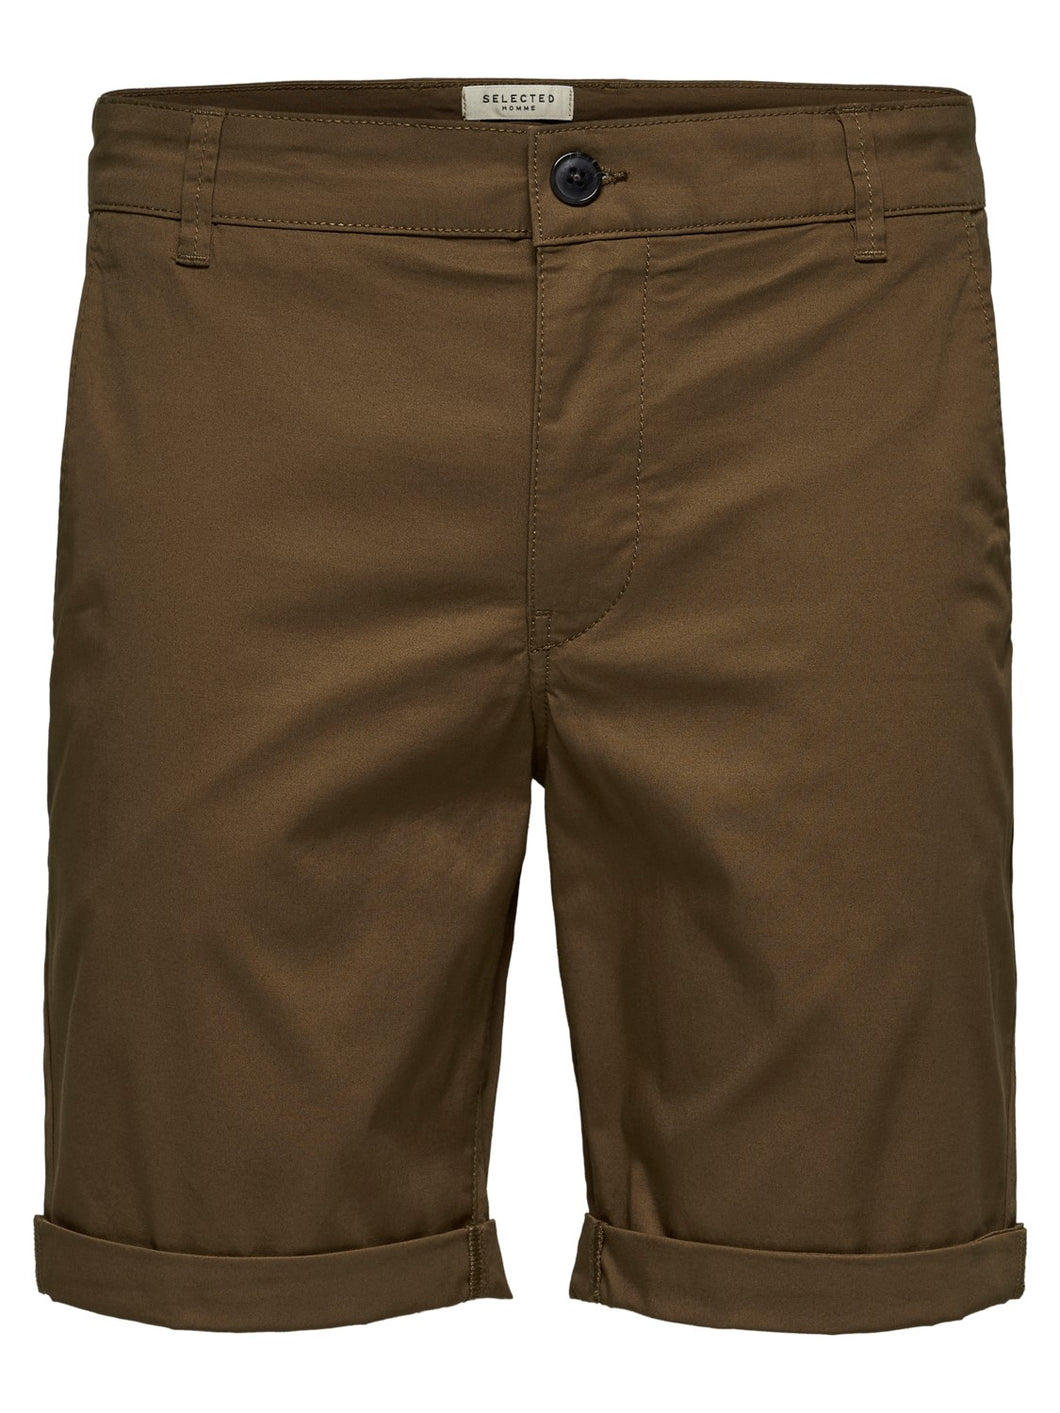 Selected Homme Paris Chino Shorts Camel